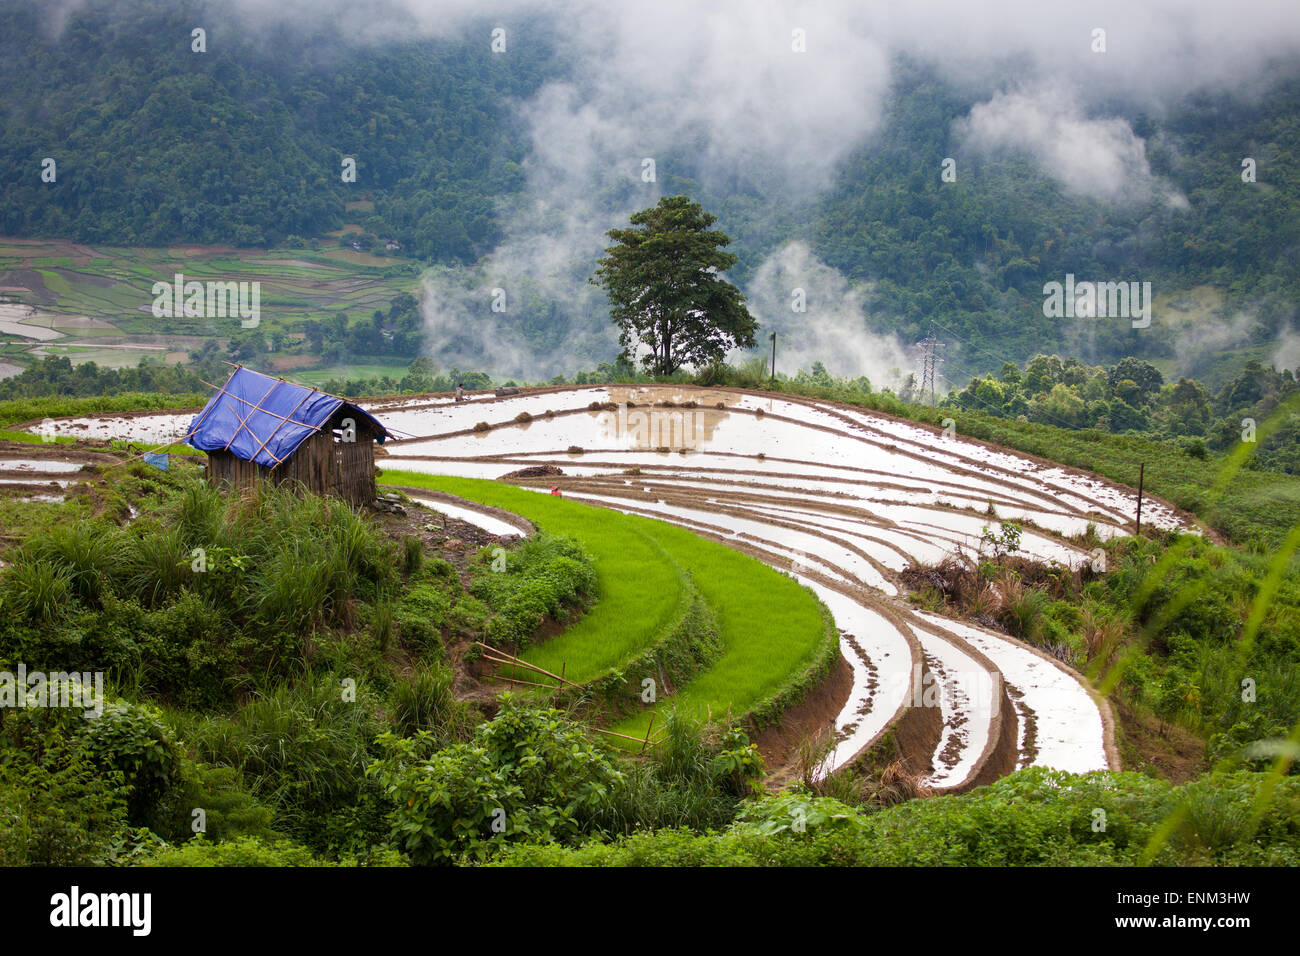 Landscape with terraces for growing rice, Sapa, Vietnam - Stock Image